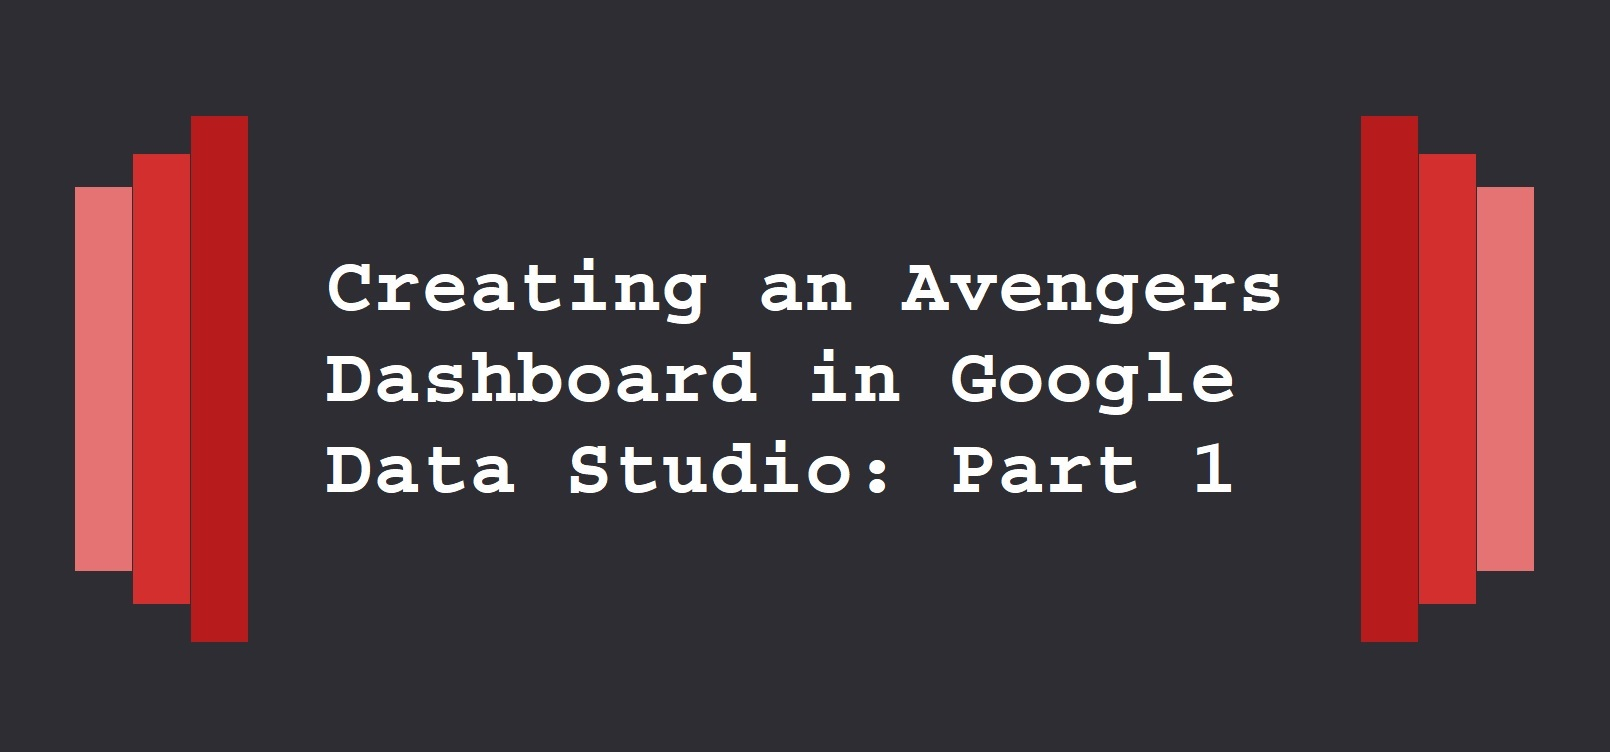 Creating an Avengers Dashboard in Data Studio Part 1